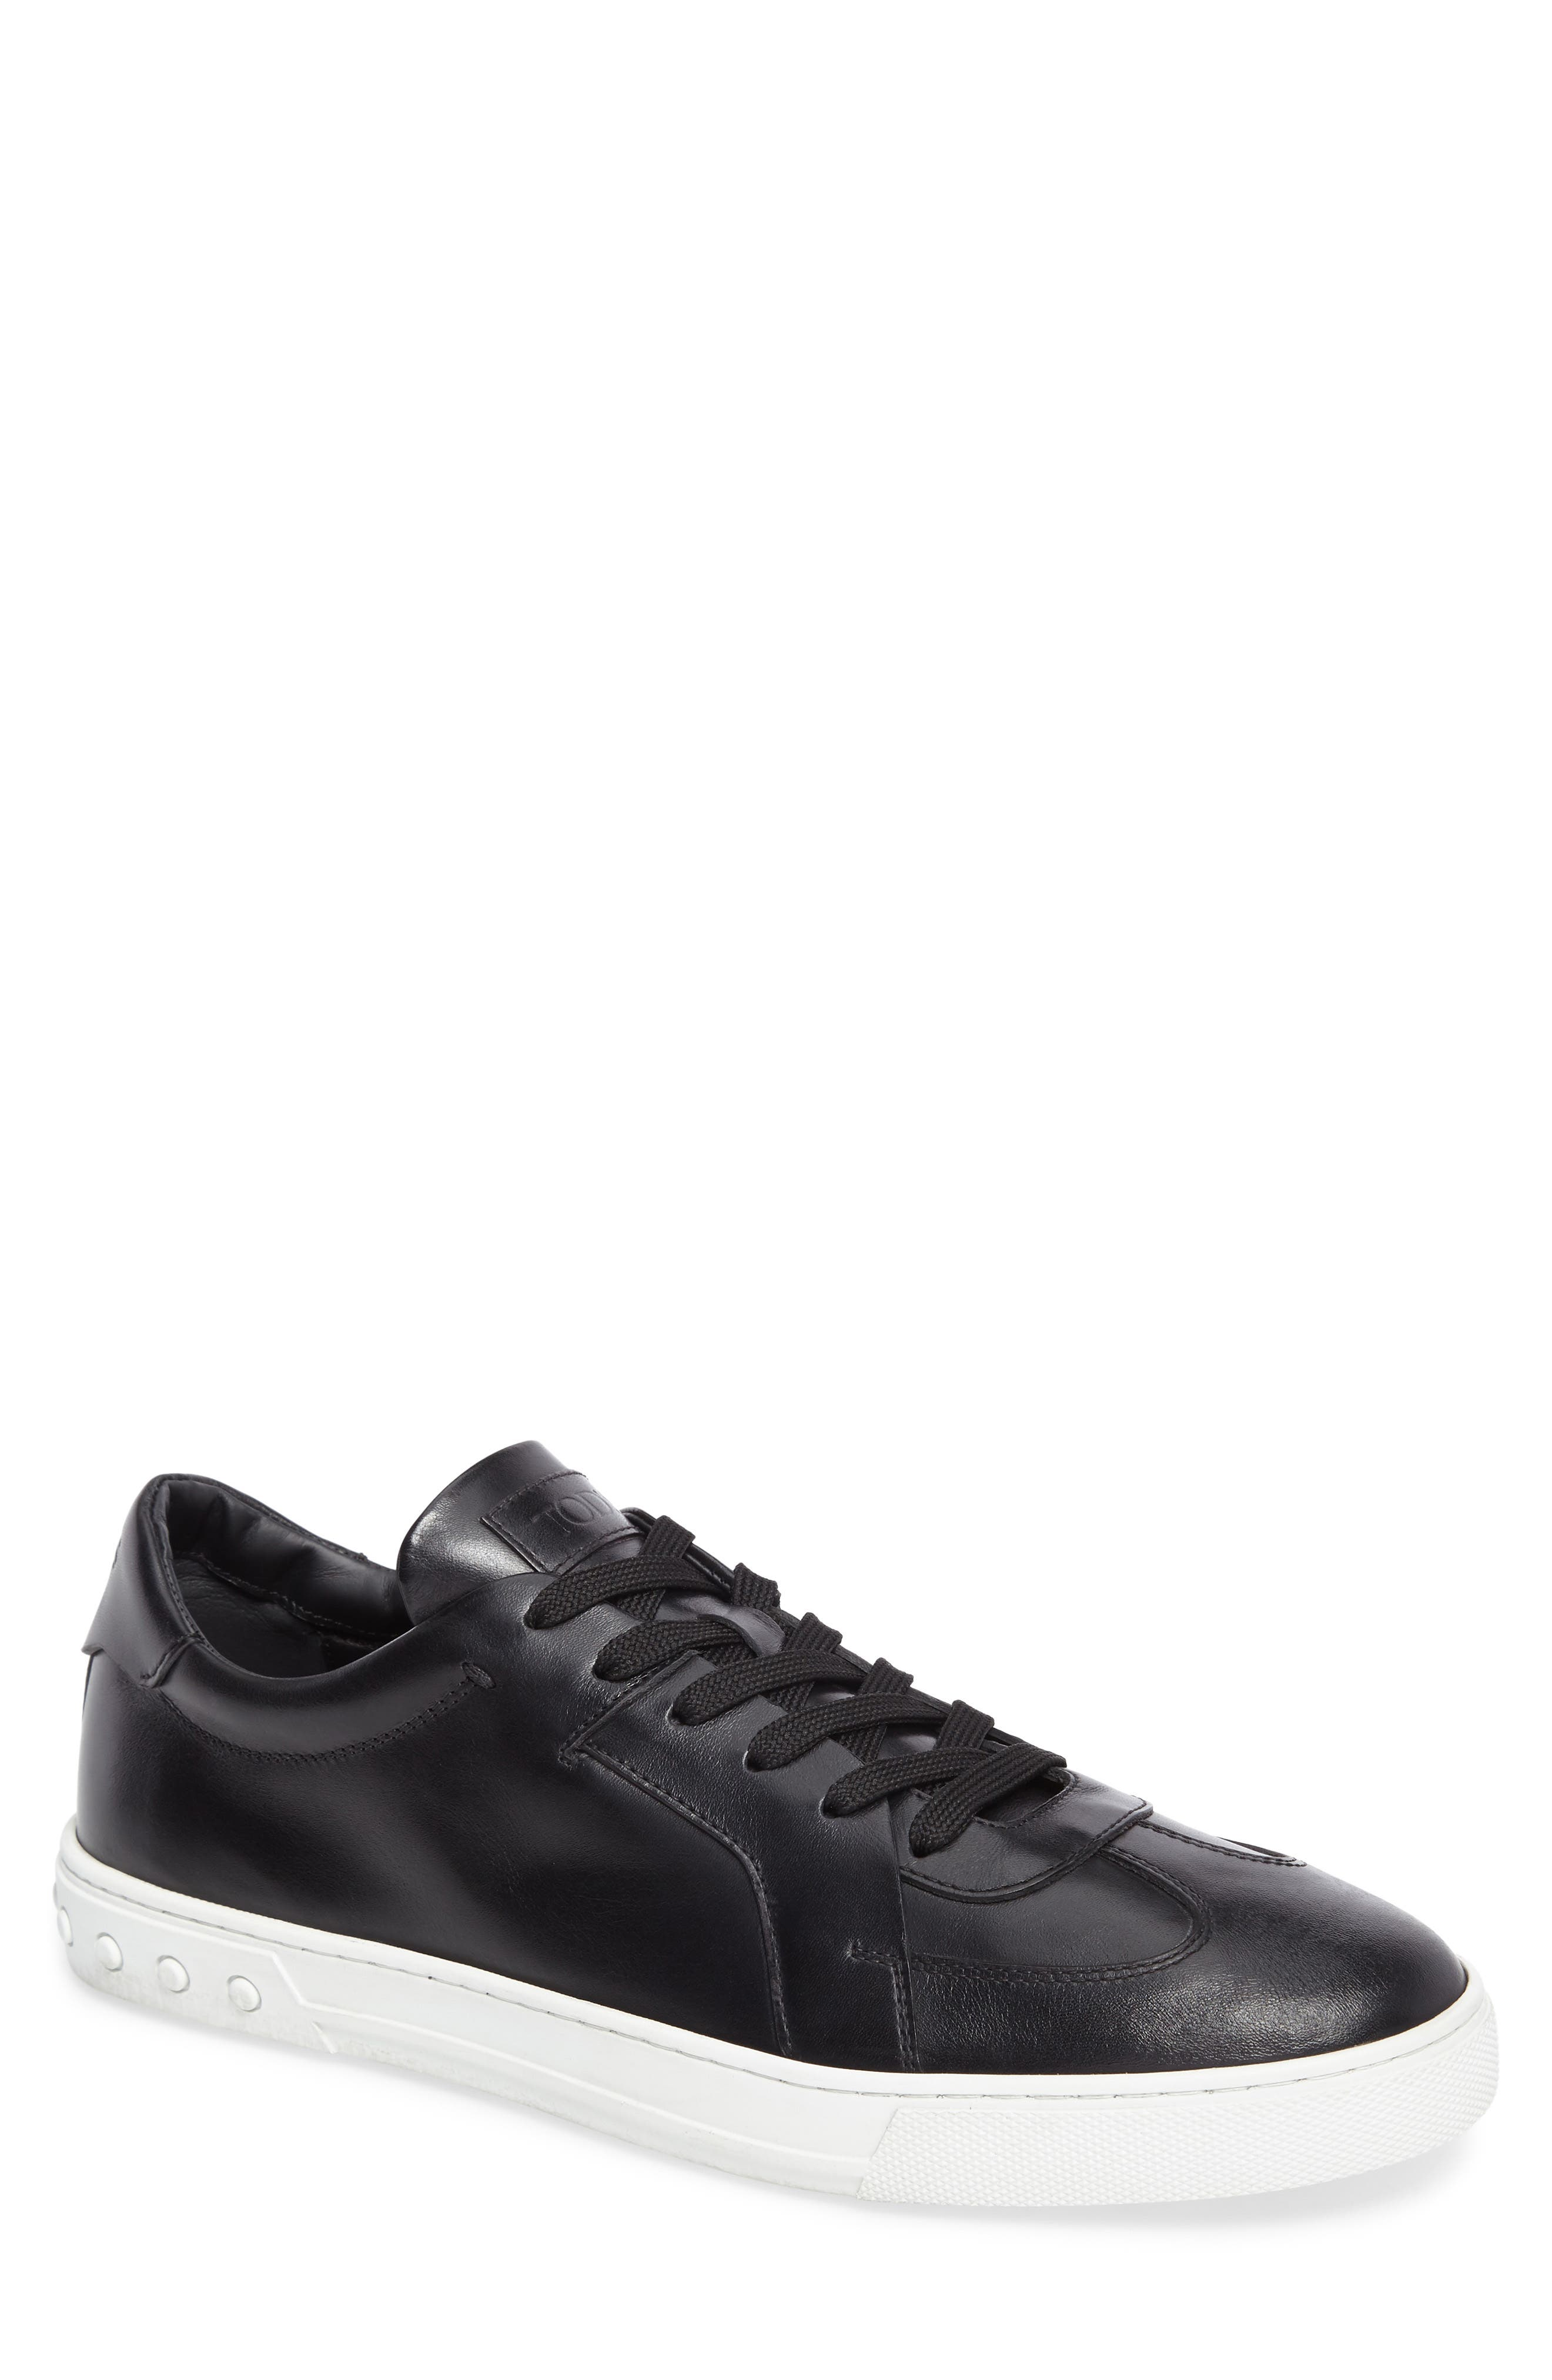 Cassetta Leather Sneaker,                         Main,                         color, Black Leather